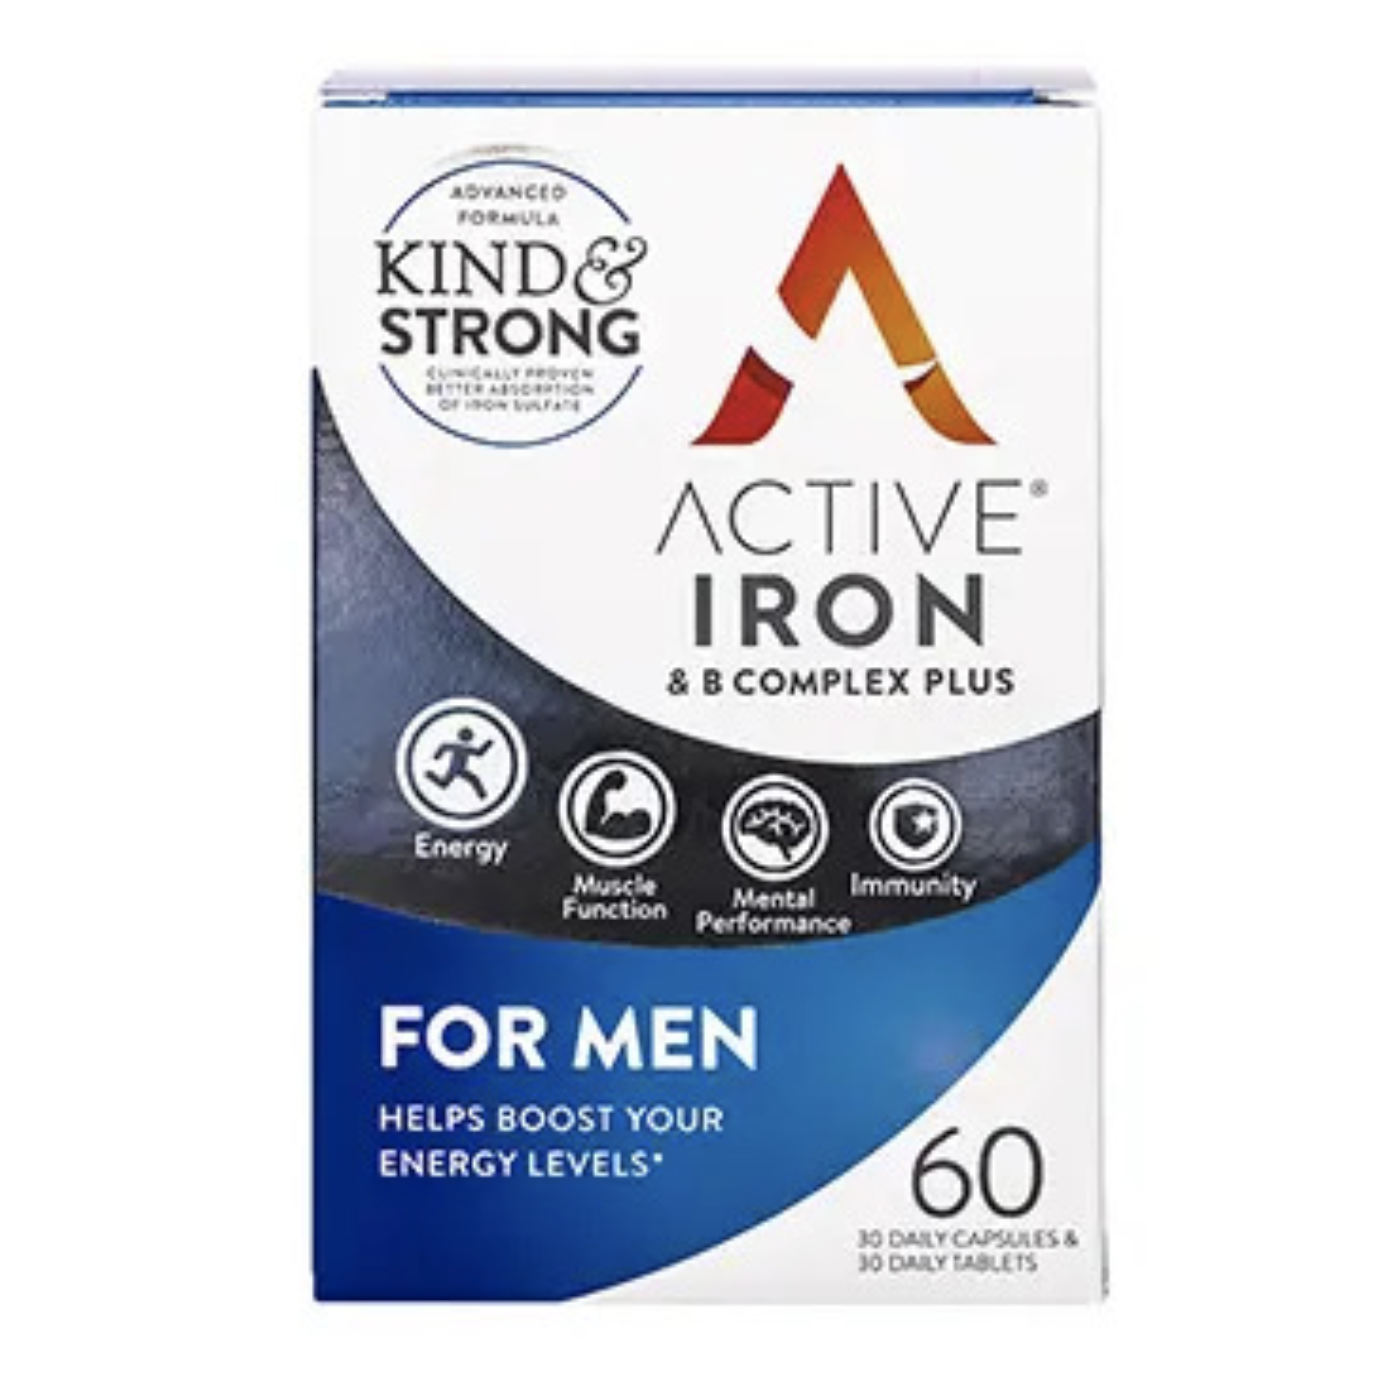 Active Iron & B Complex For Men 60 Capsules